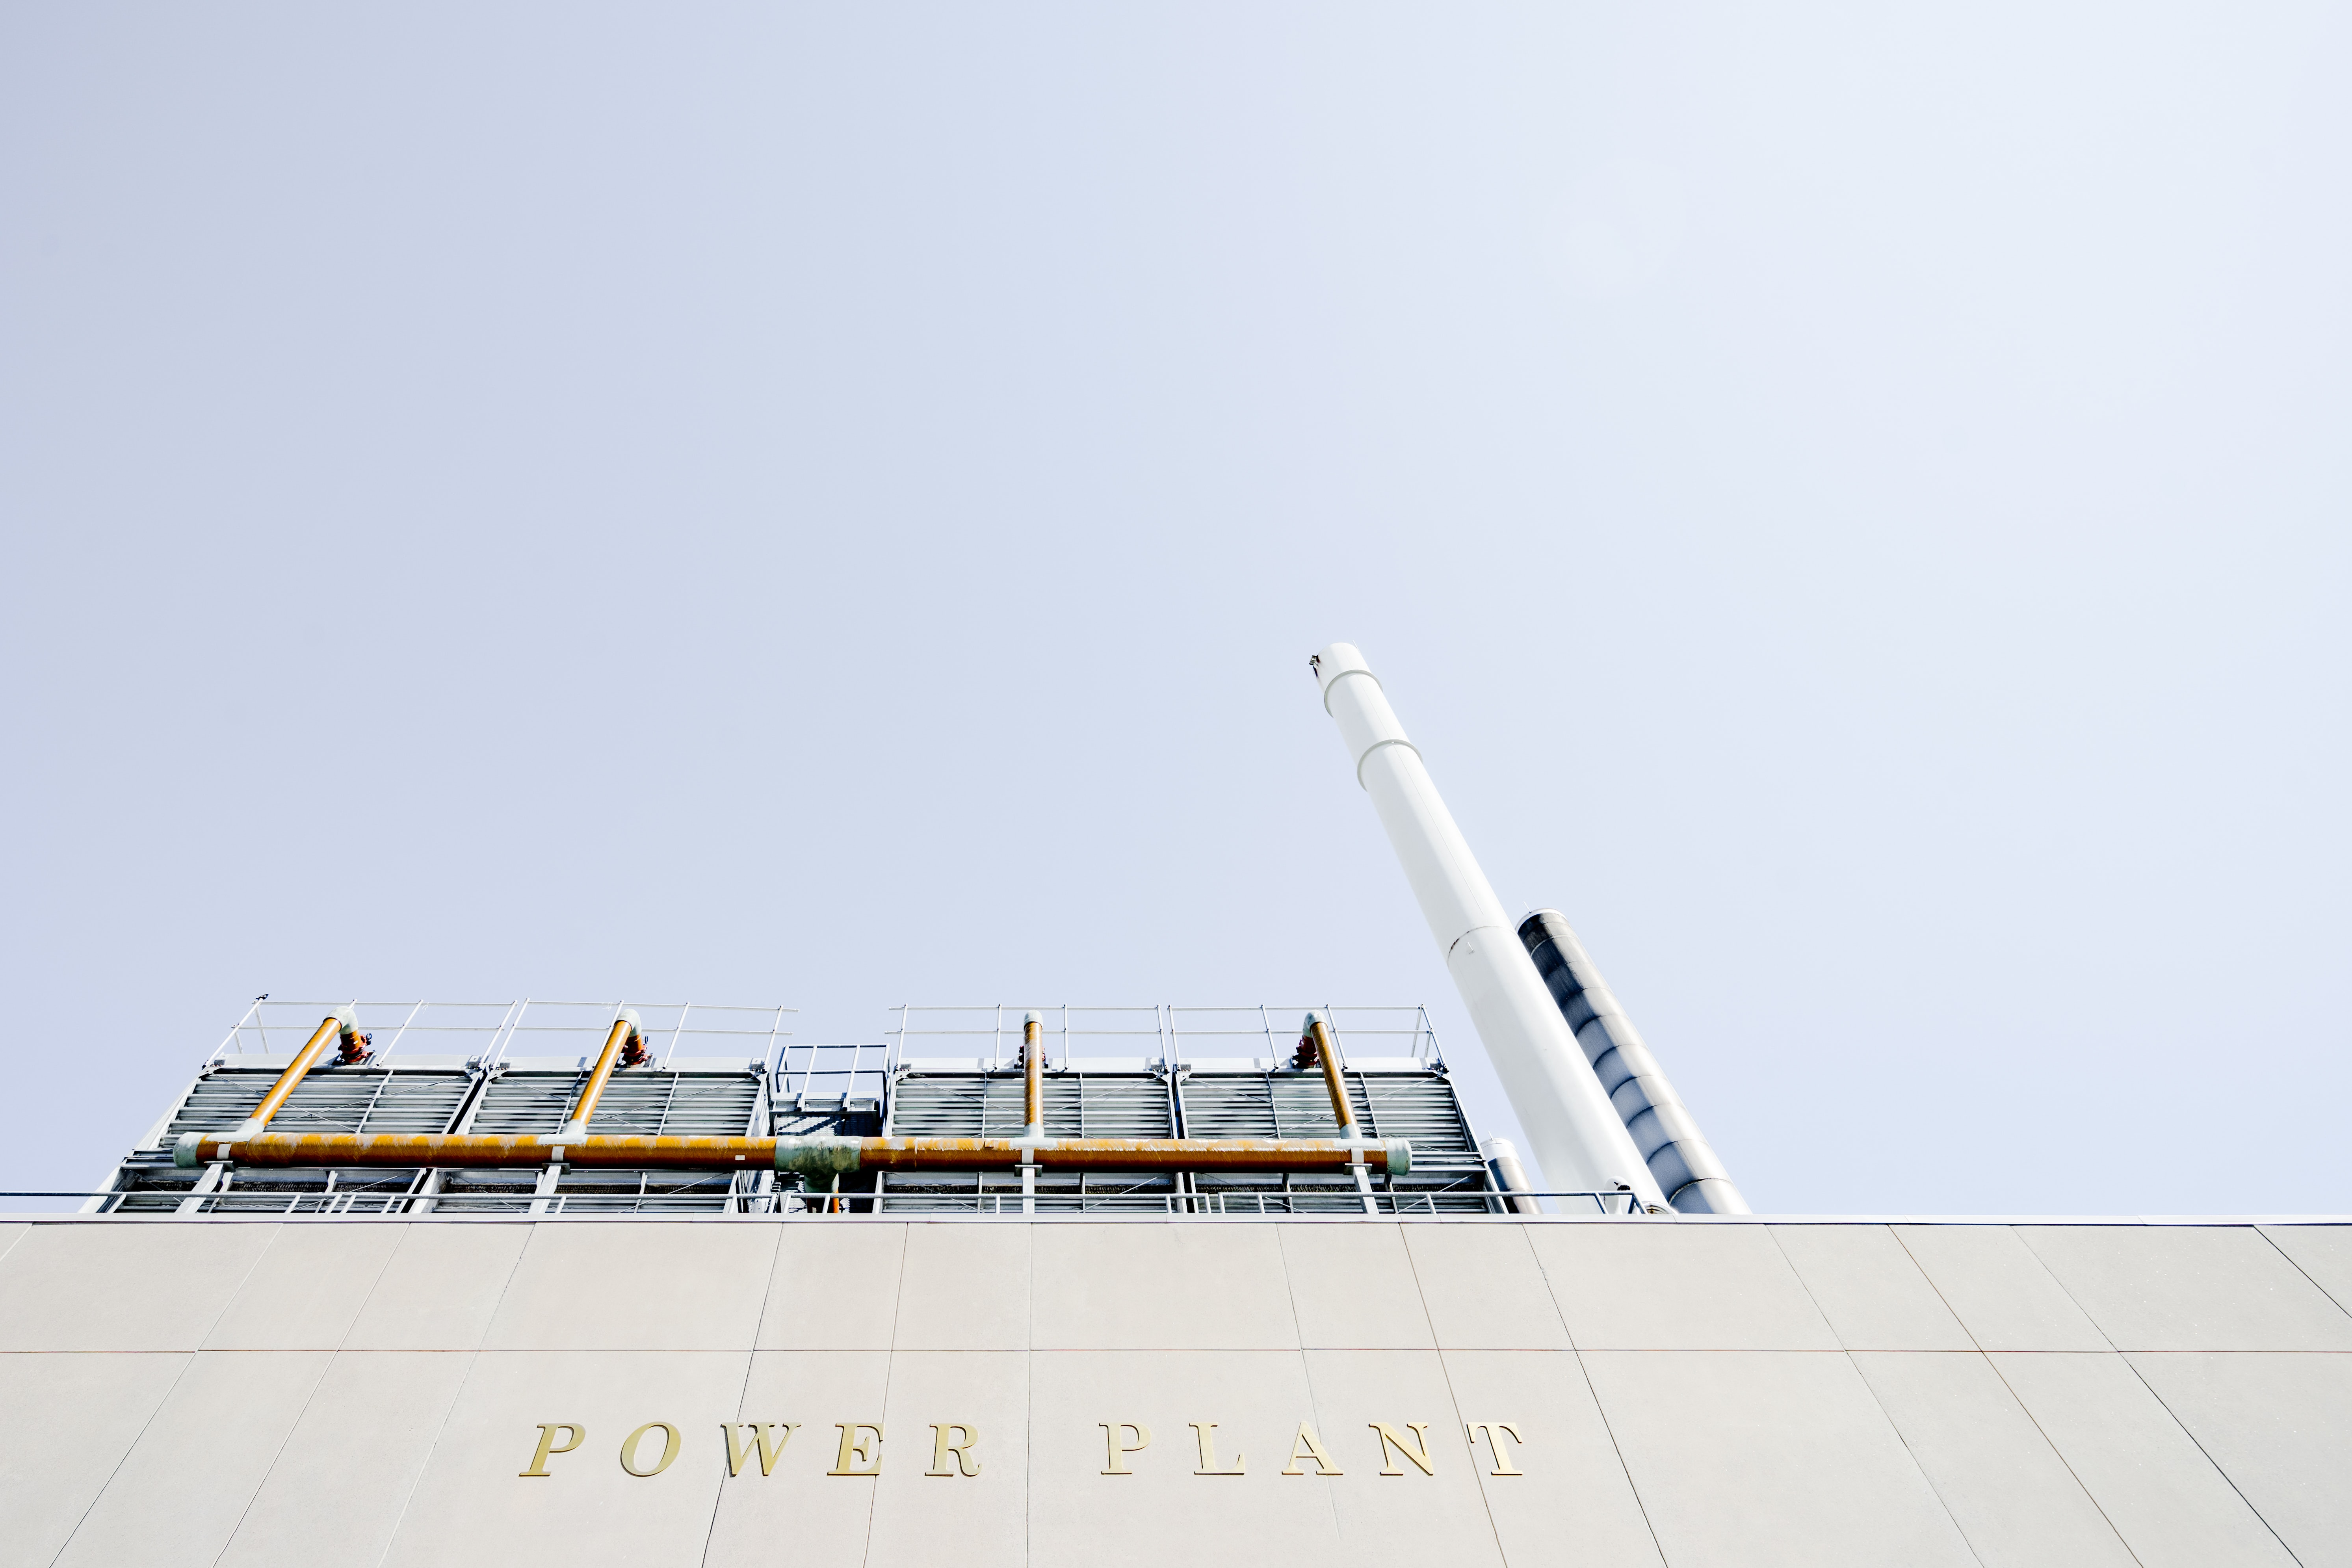 Western University industrial power plant